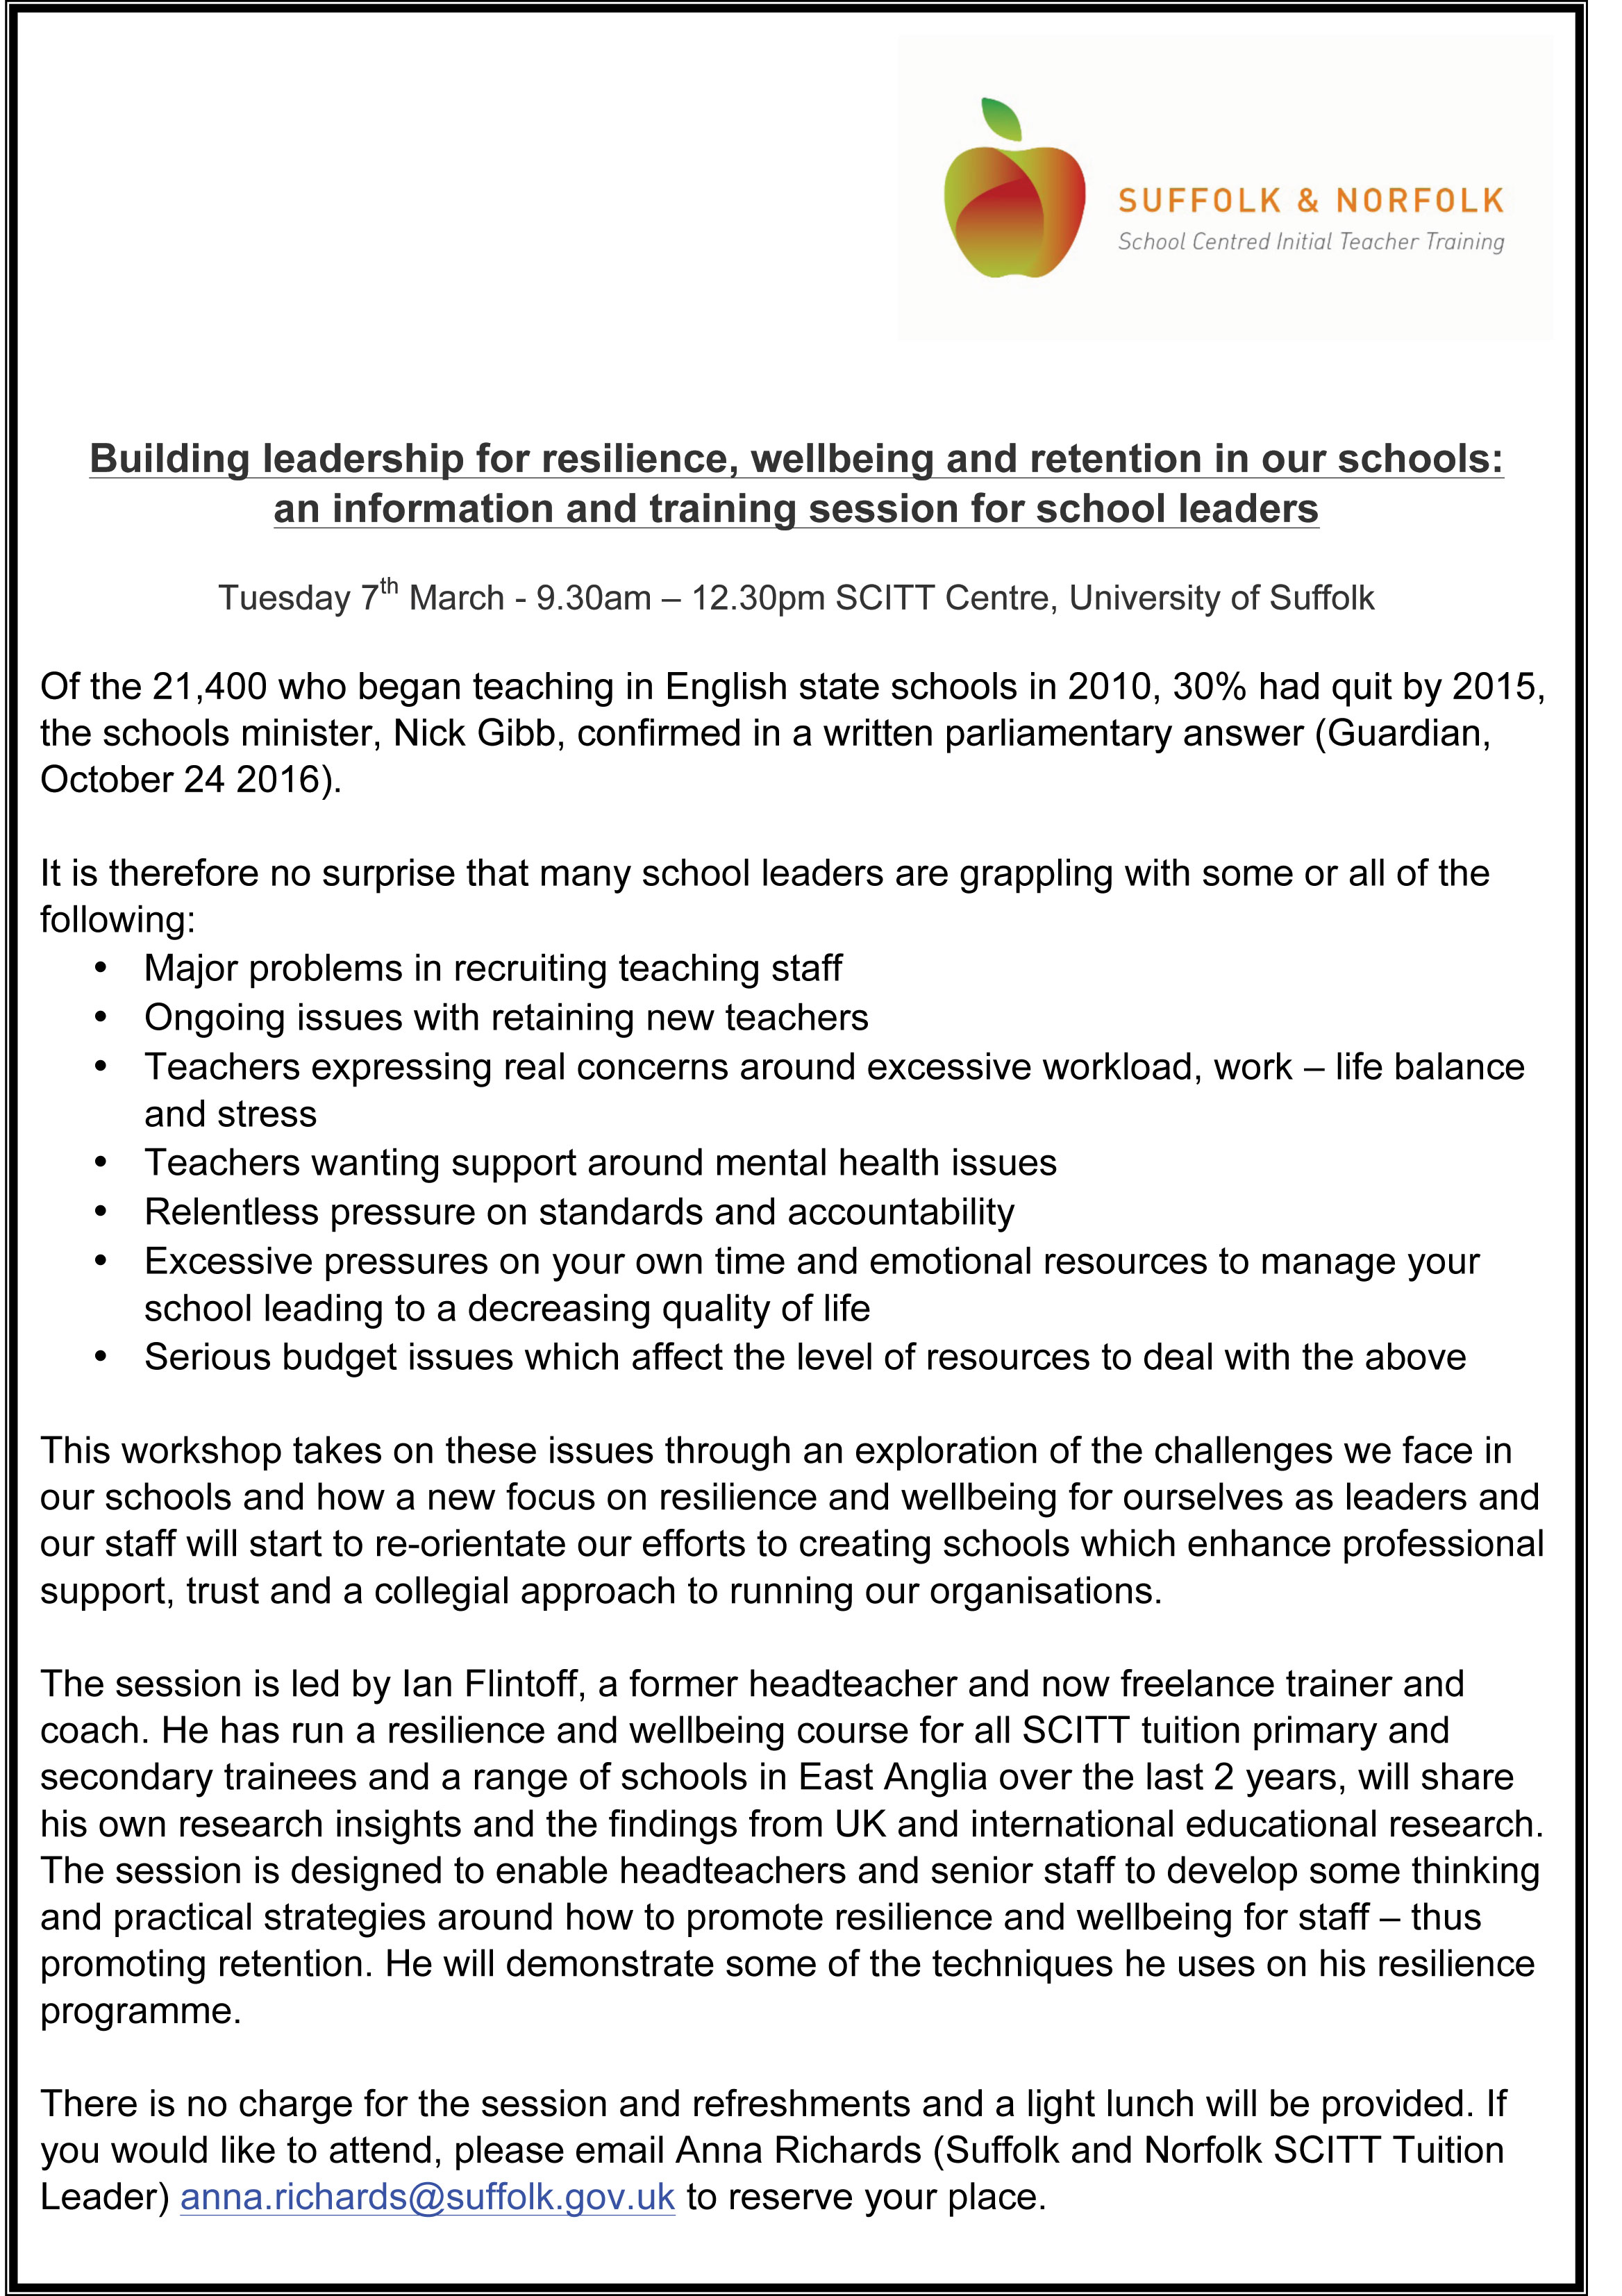 Building-leadership-for-resilience-and-wellbeing-in-our-schoolsMarch72017flier